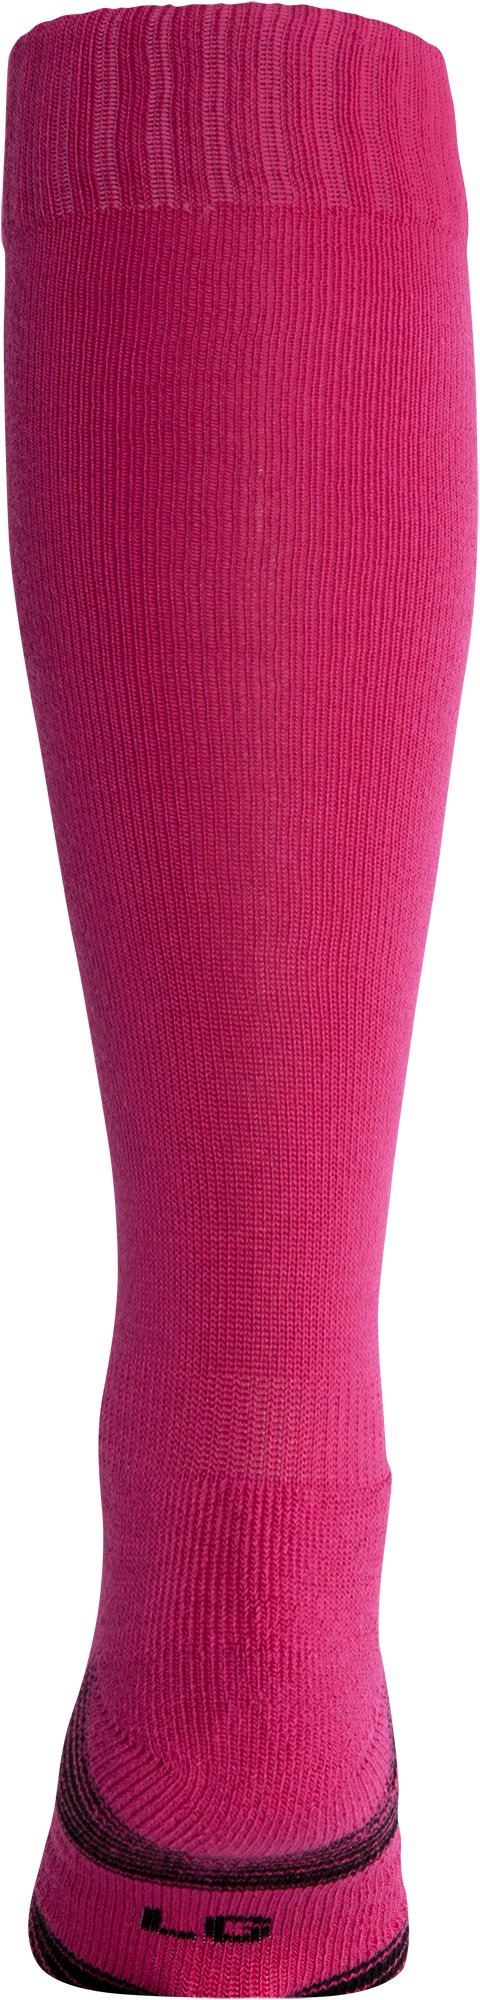 UA Over-The-Calf Team Socks, Tropic Pink